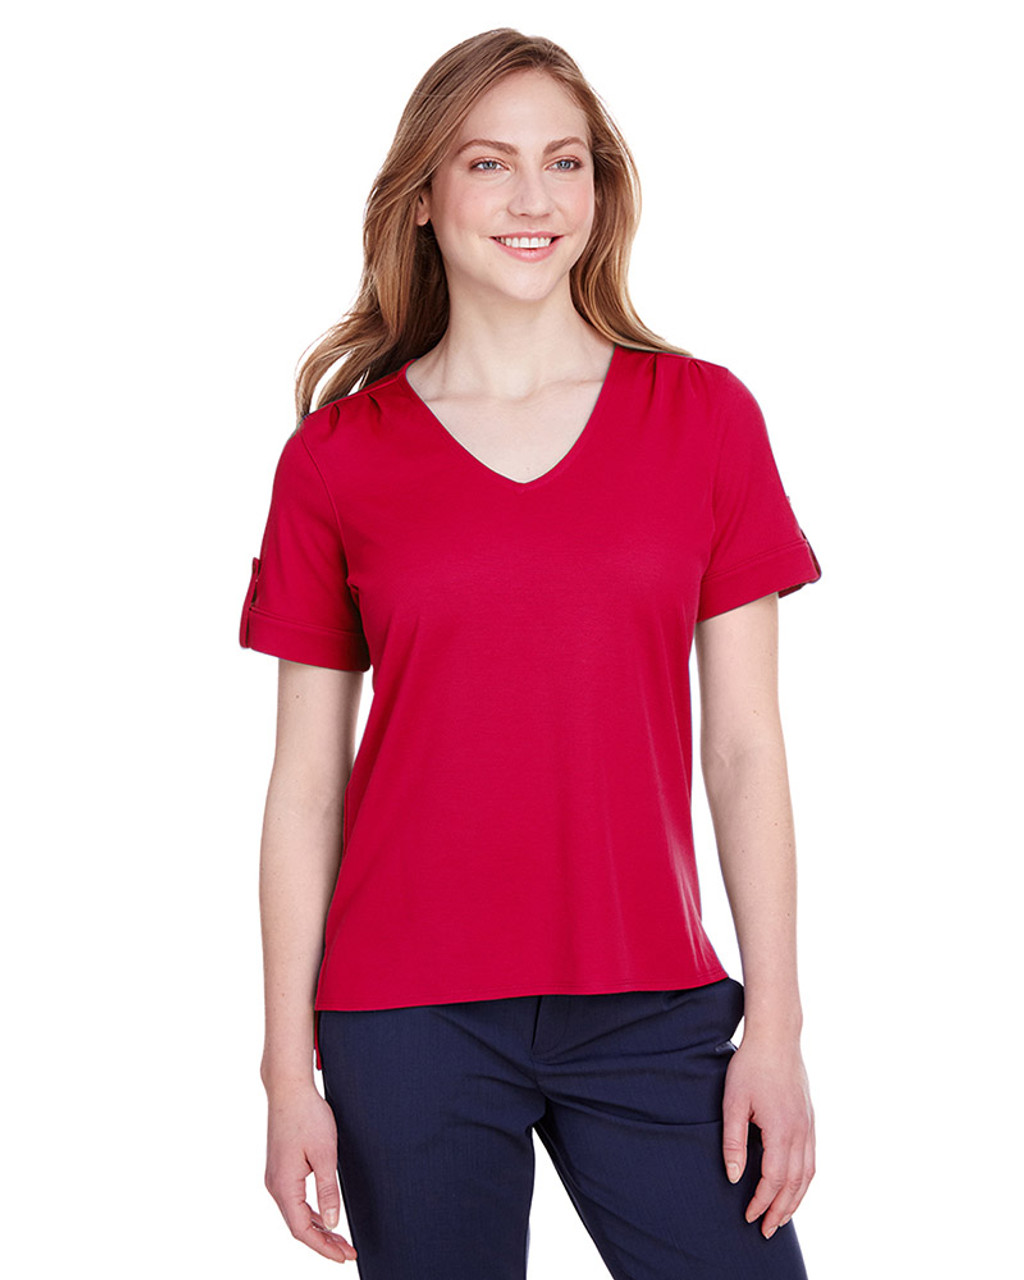 Red - DG20WB Devon & Jones Ladies' CrownLux Performance™ Plaited Rolled-Sleeve Top | Blankclothing.ca